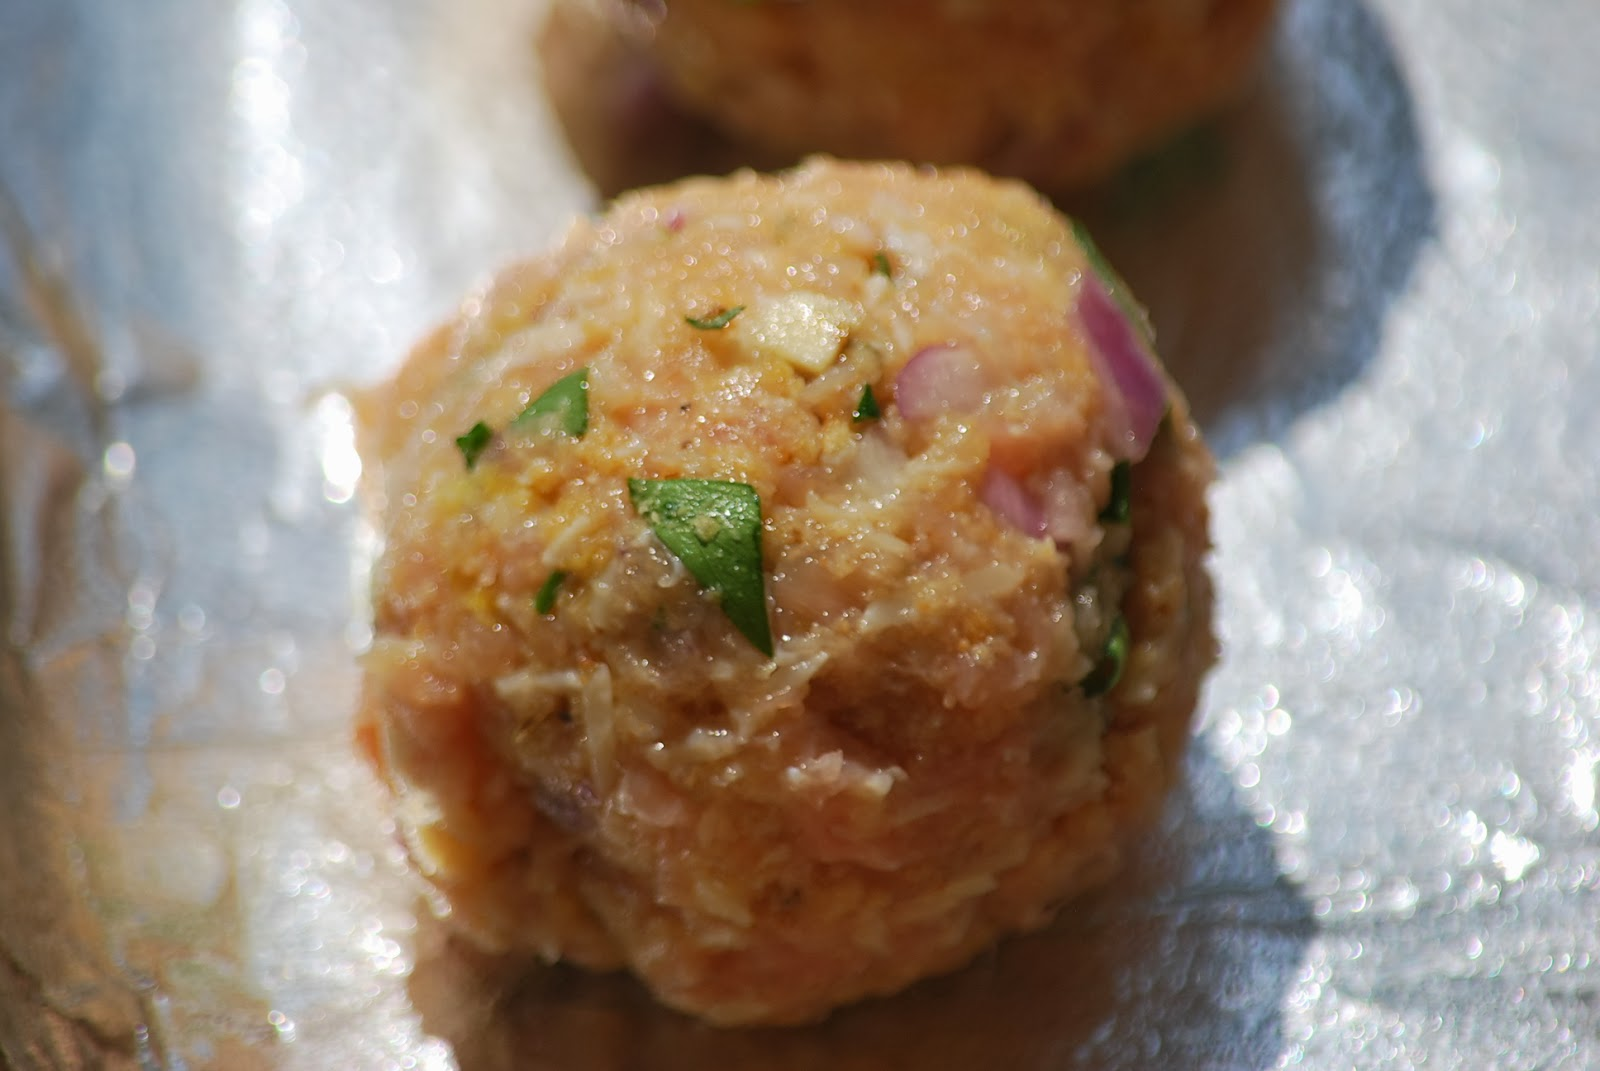 how to make bake meatballs with no sauce